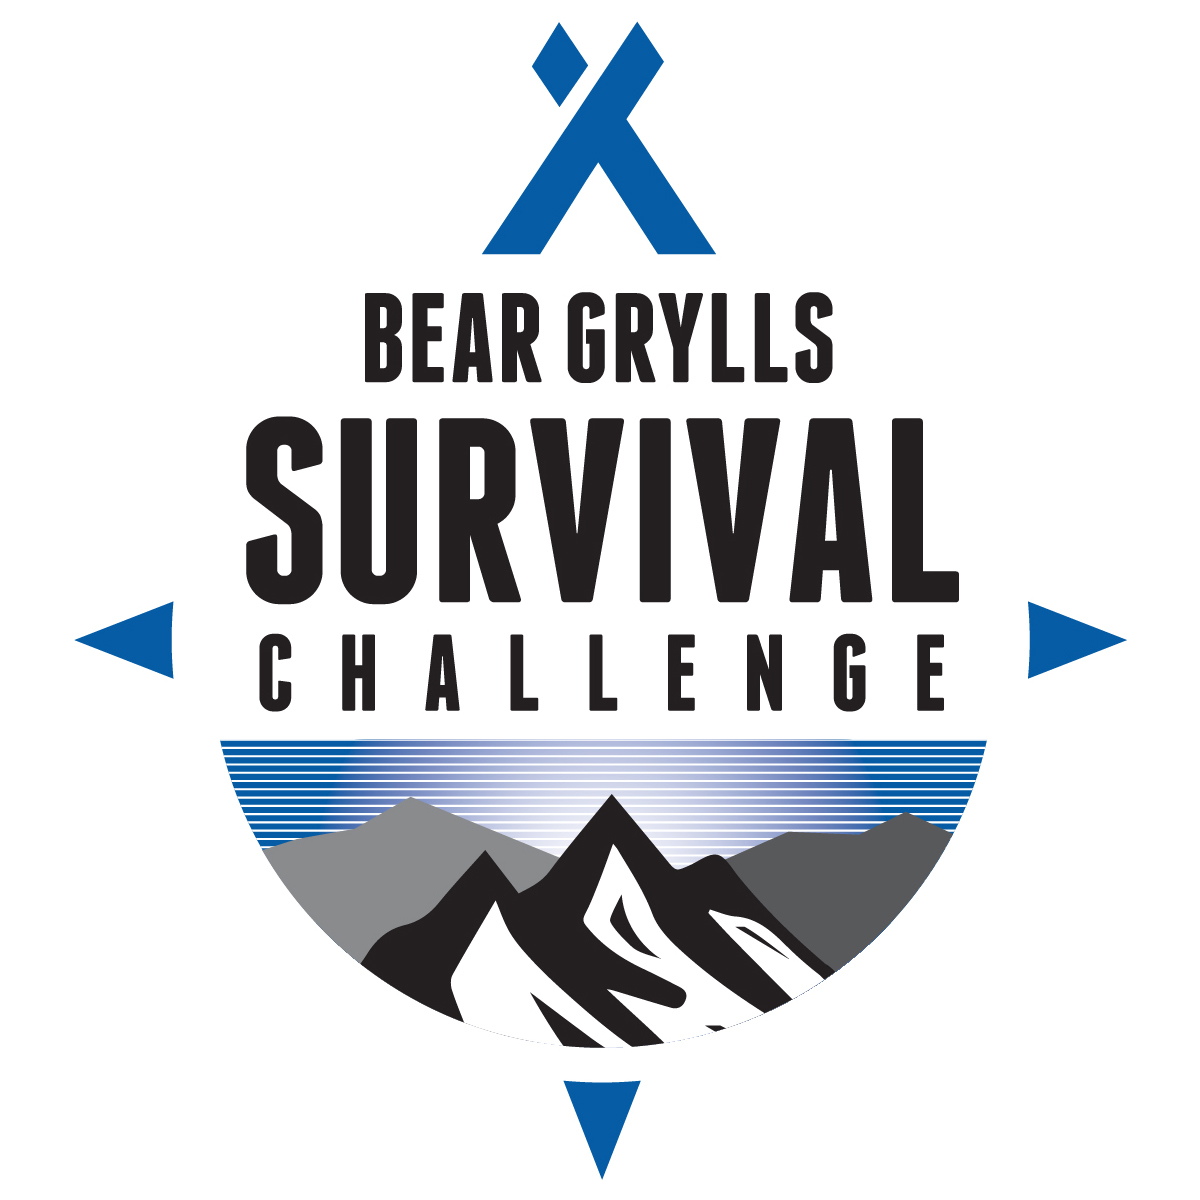 bear grylls survival challenge and ufc gym u00ae partner on